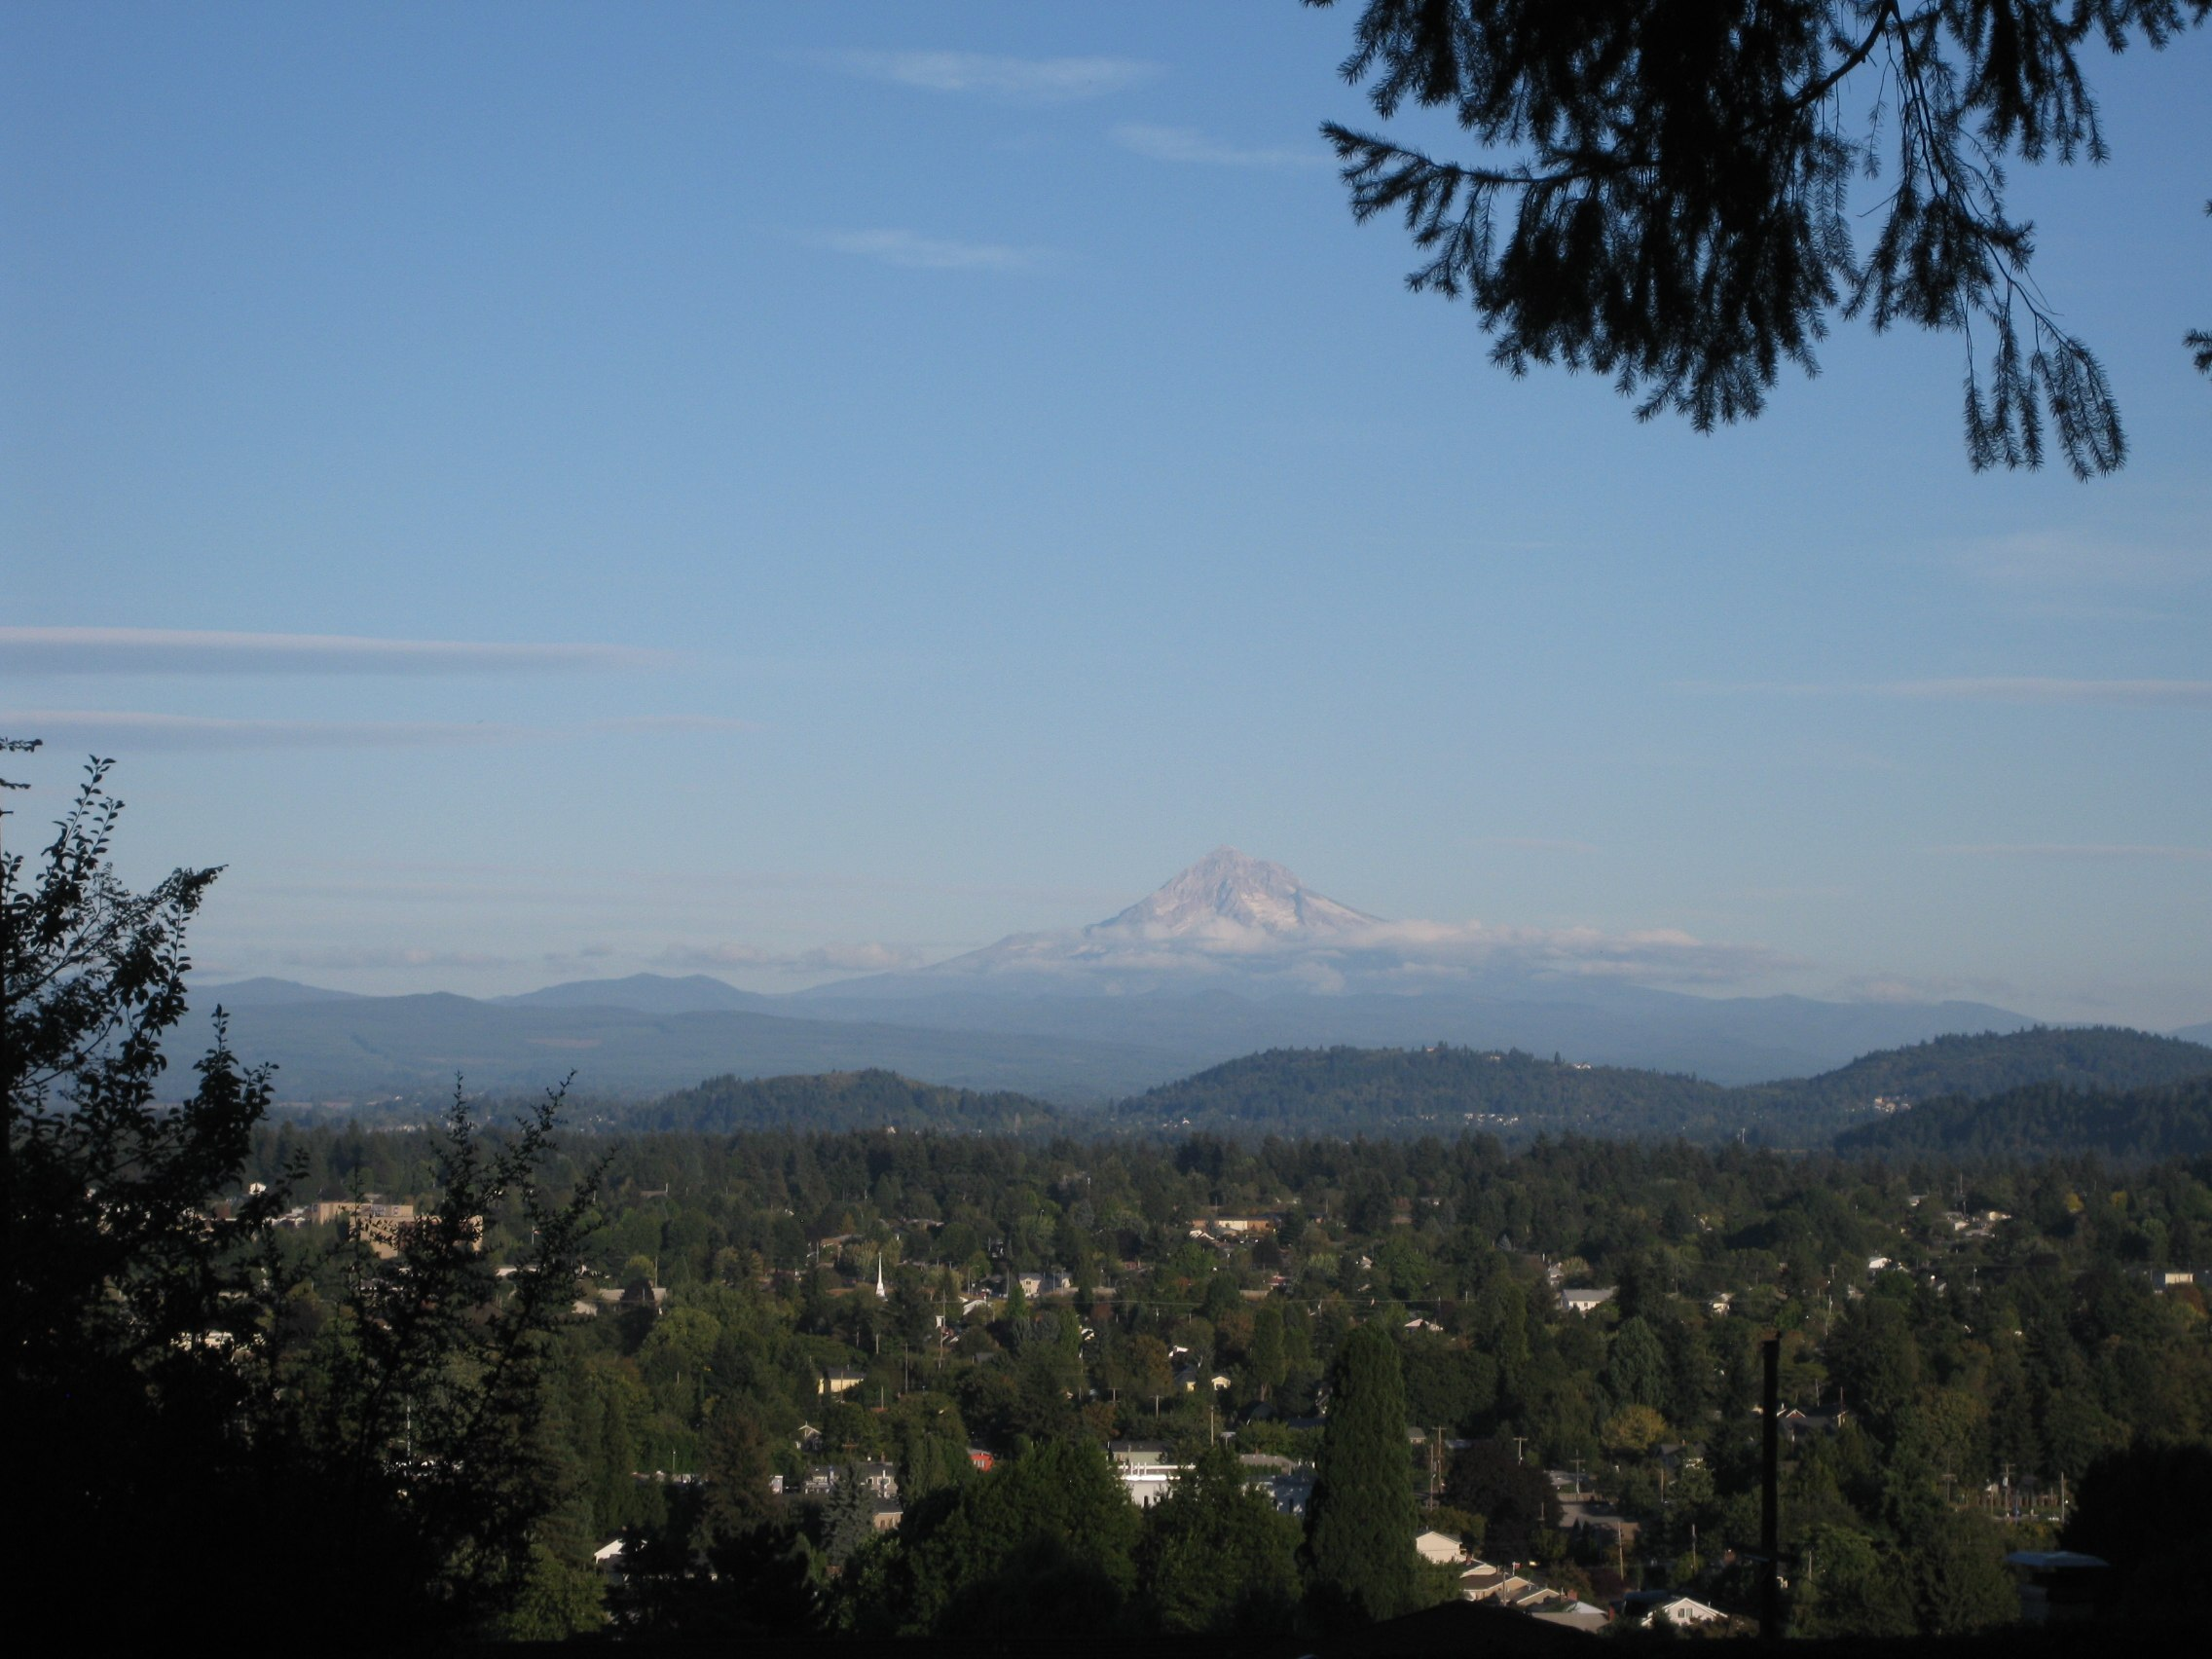 The view of Mt. Hood from Mt. Tabor.